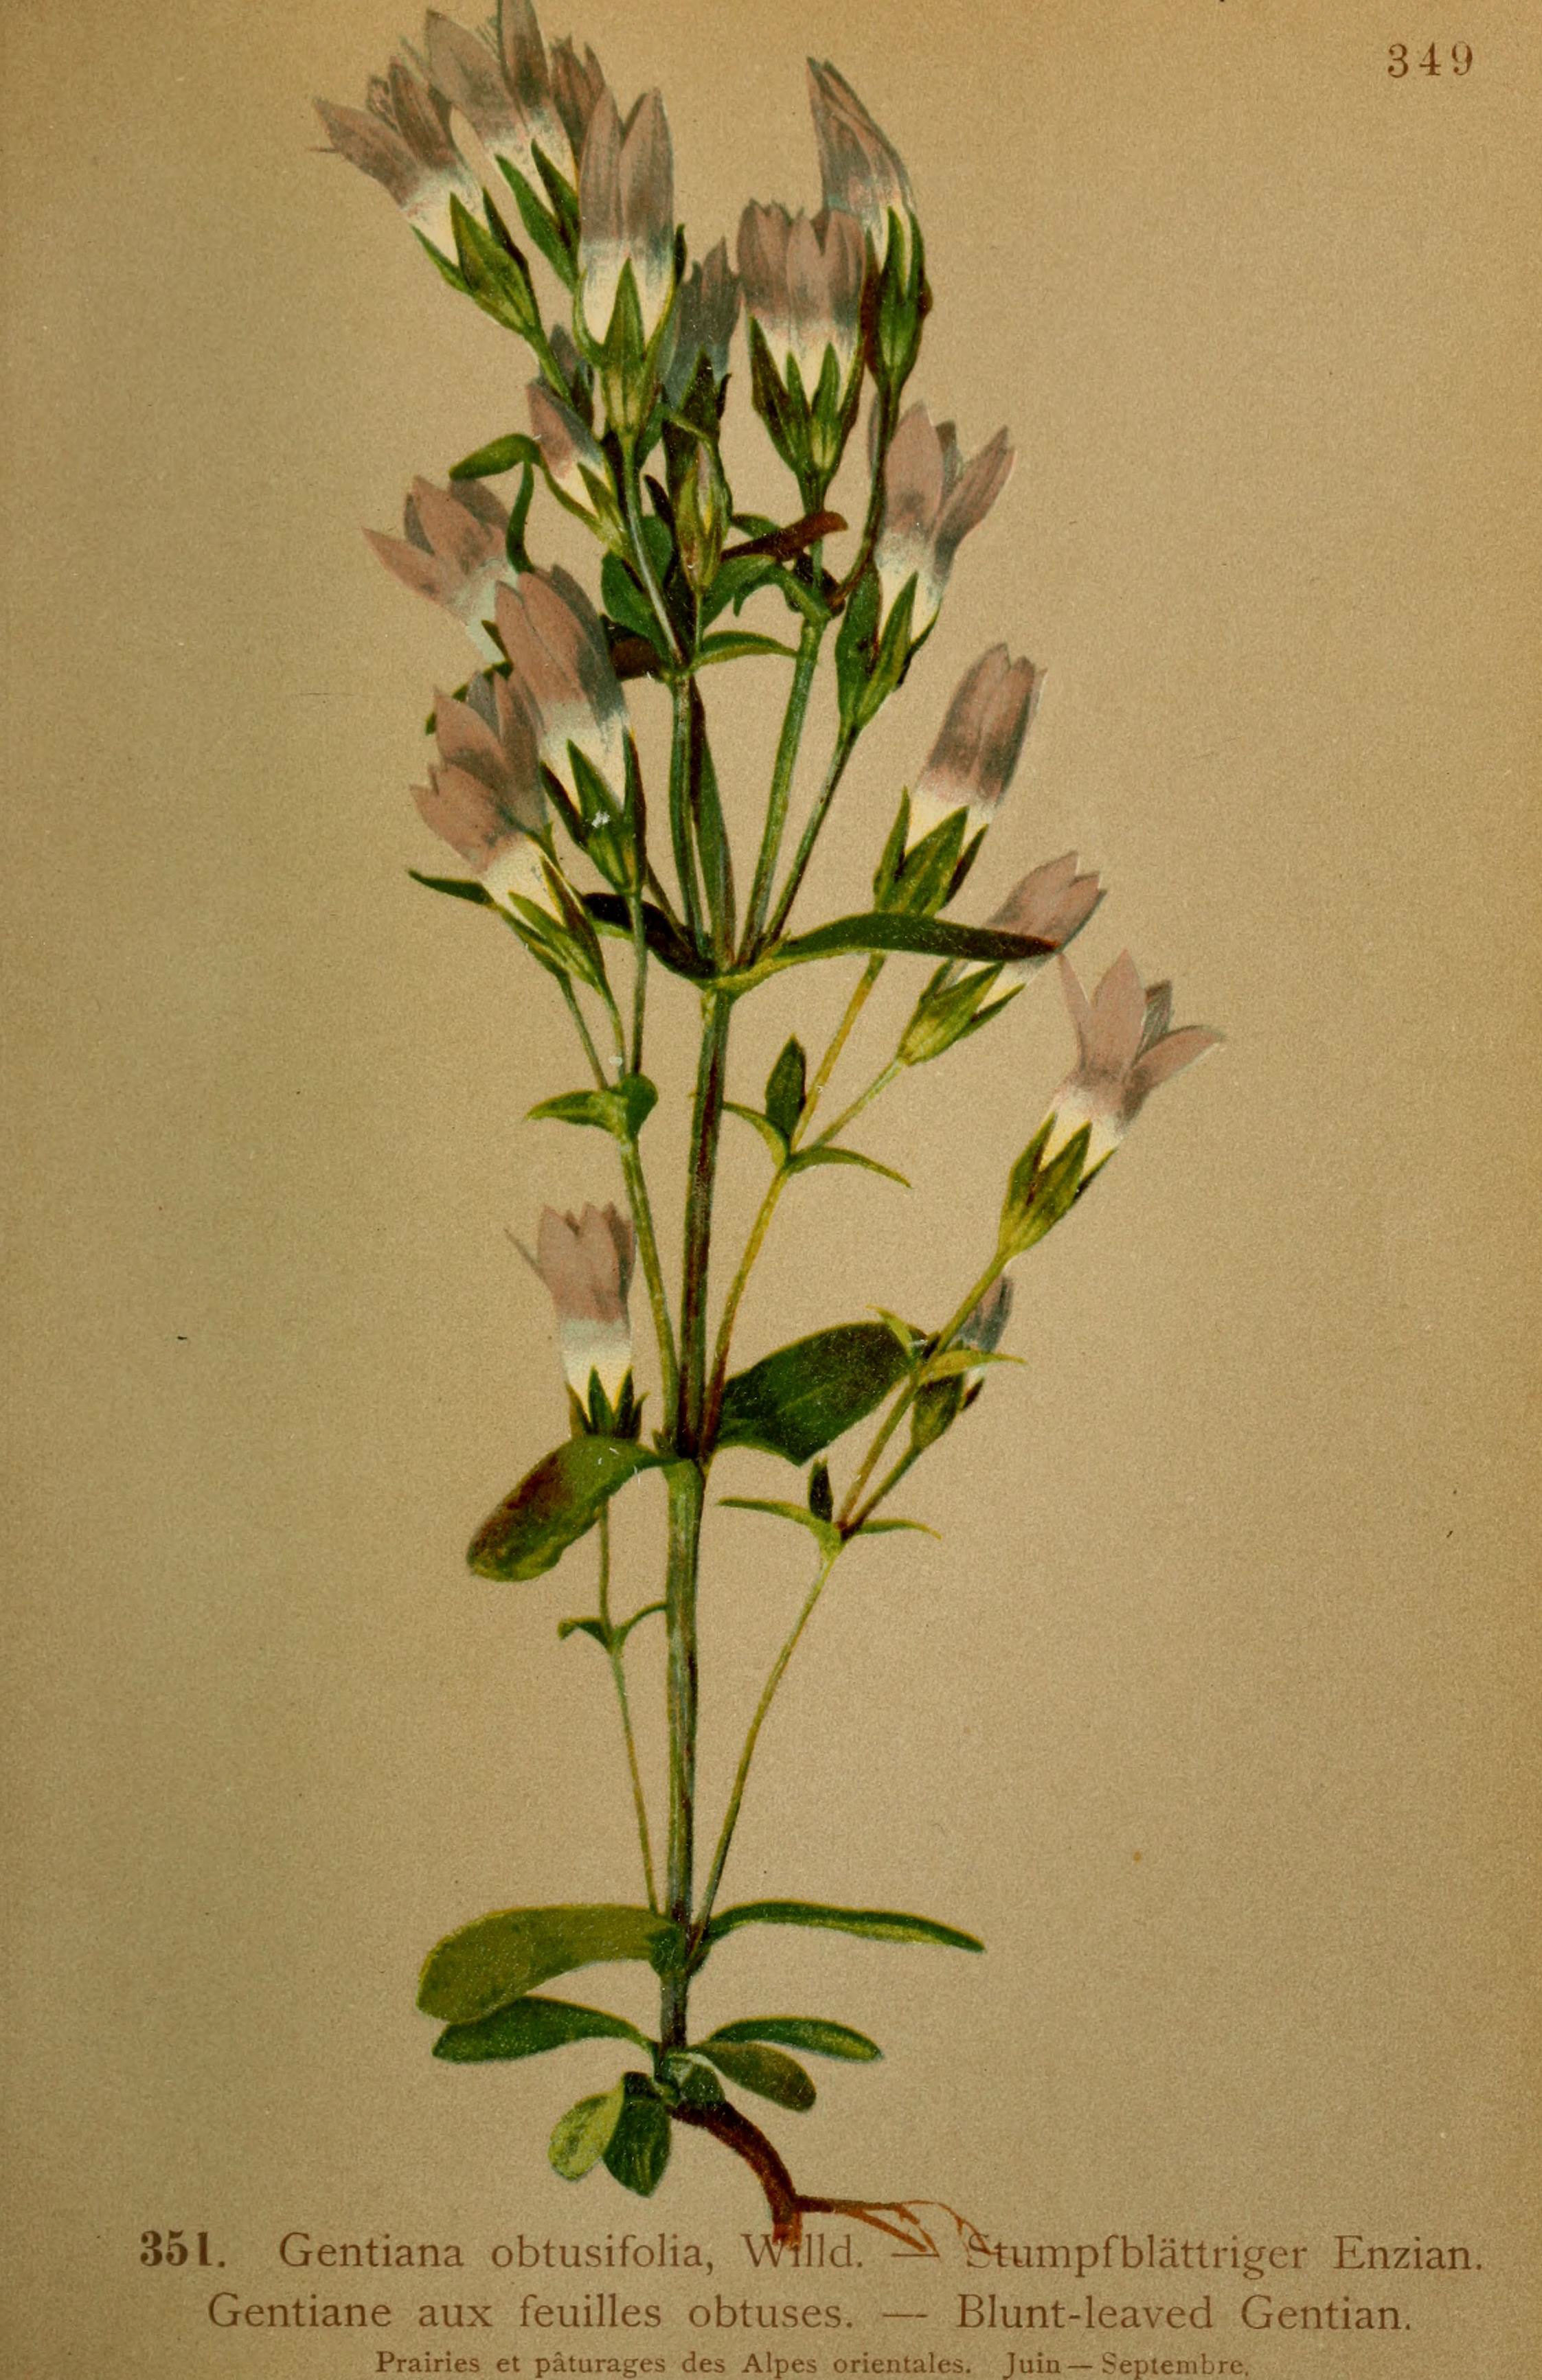 Image of autumn dwarf gentian